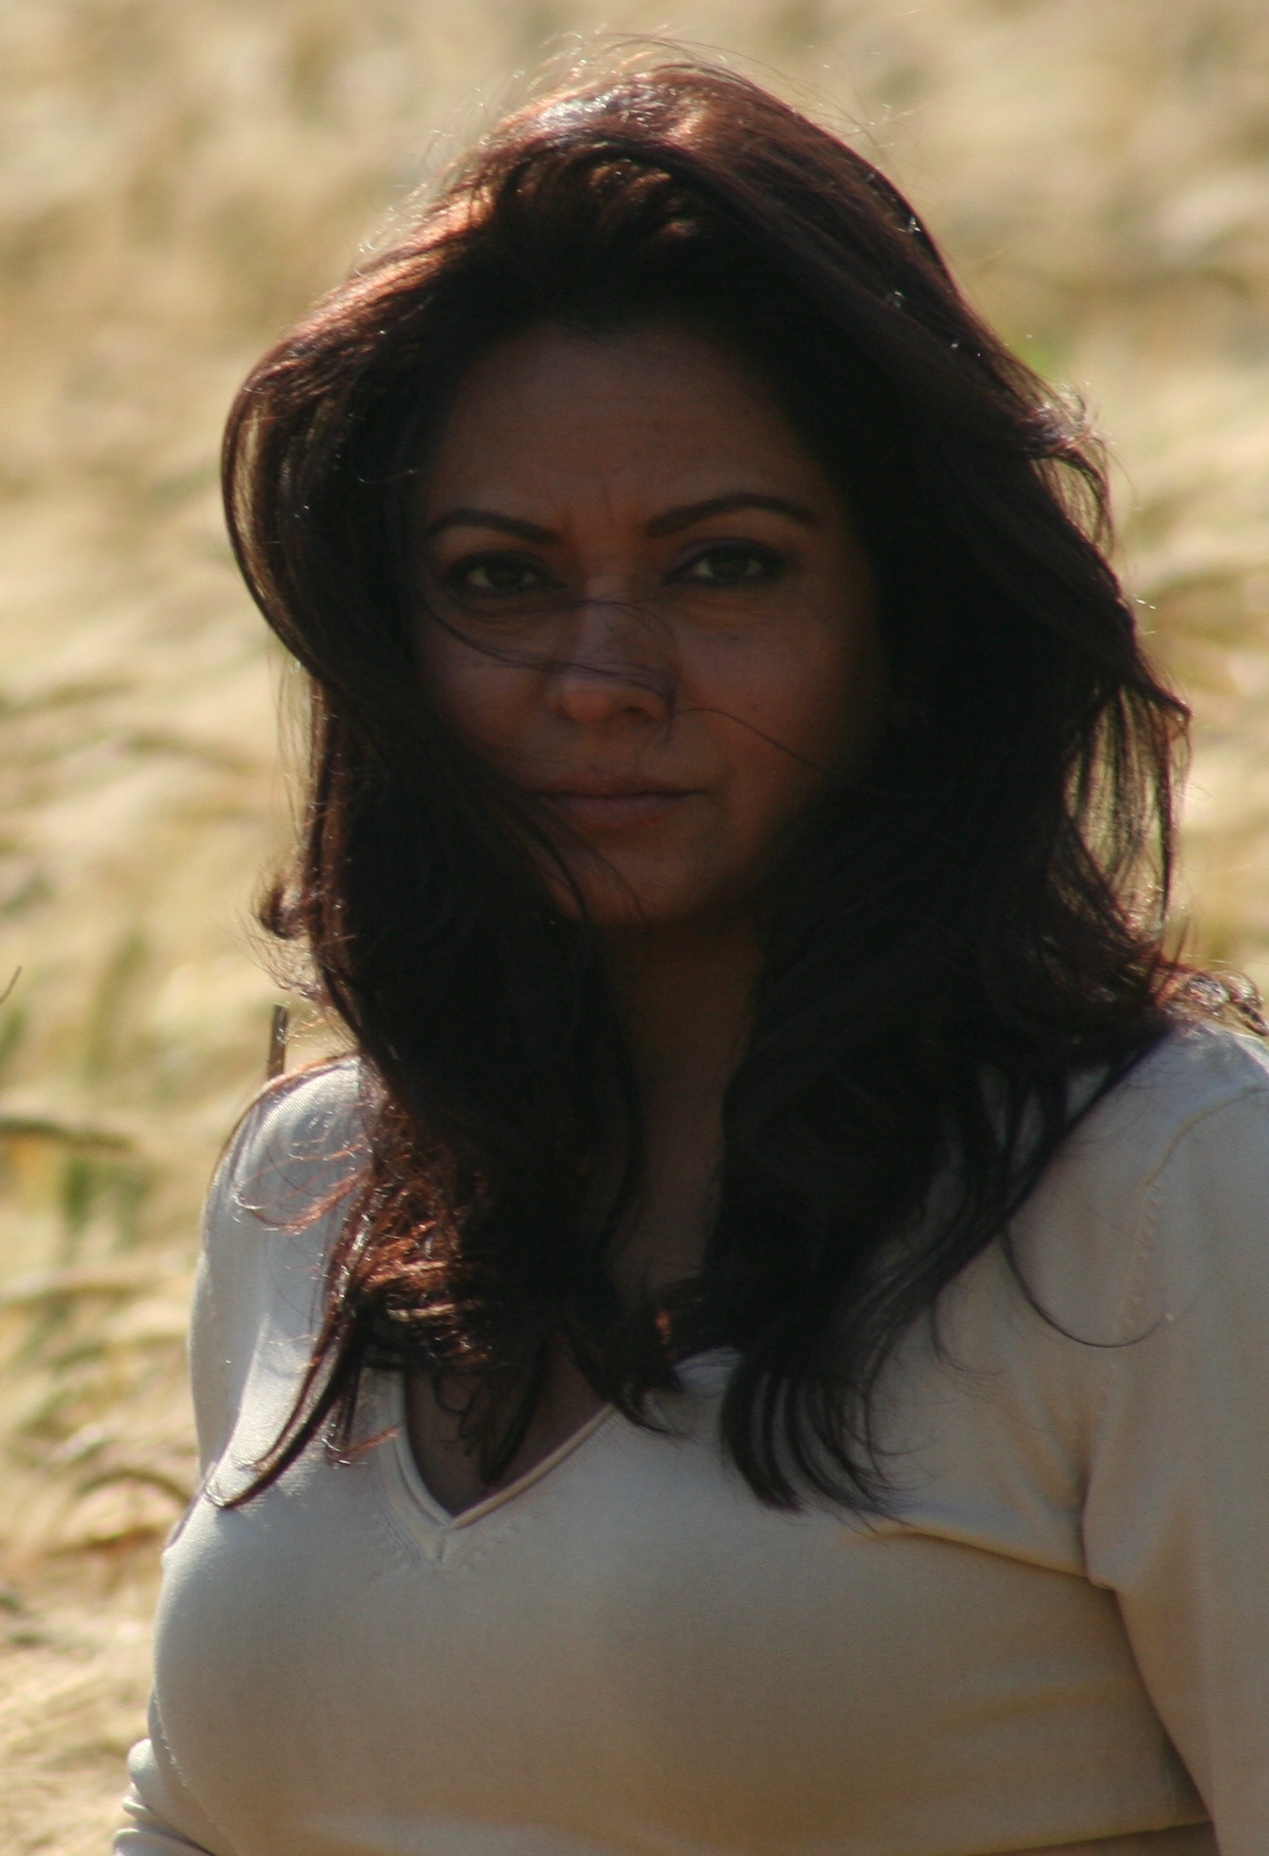 Anu Malhotra, Filmmaker on location 37